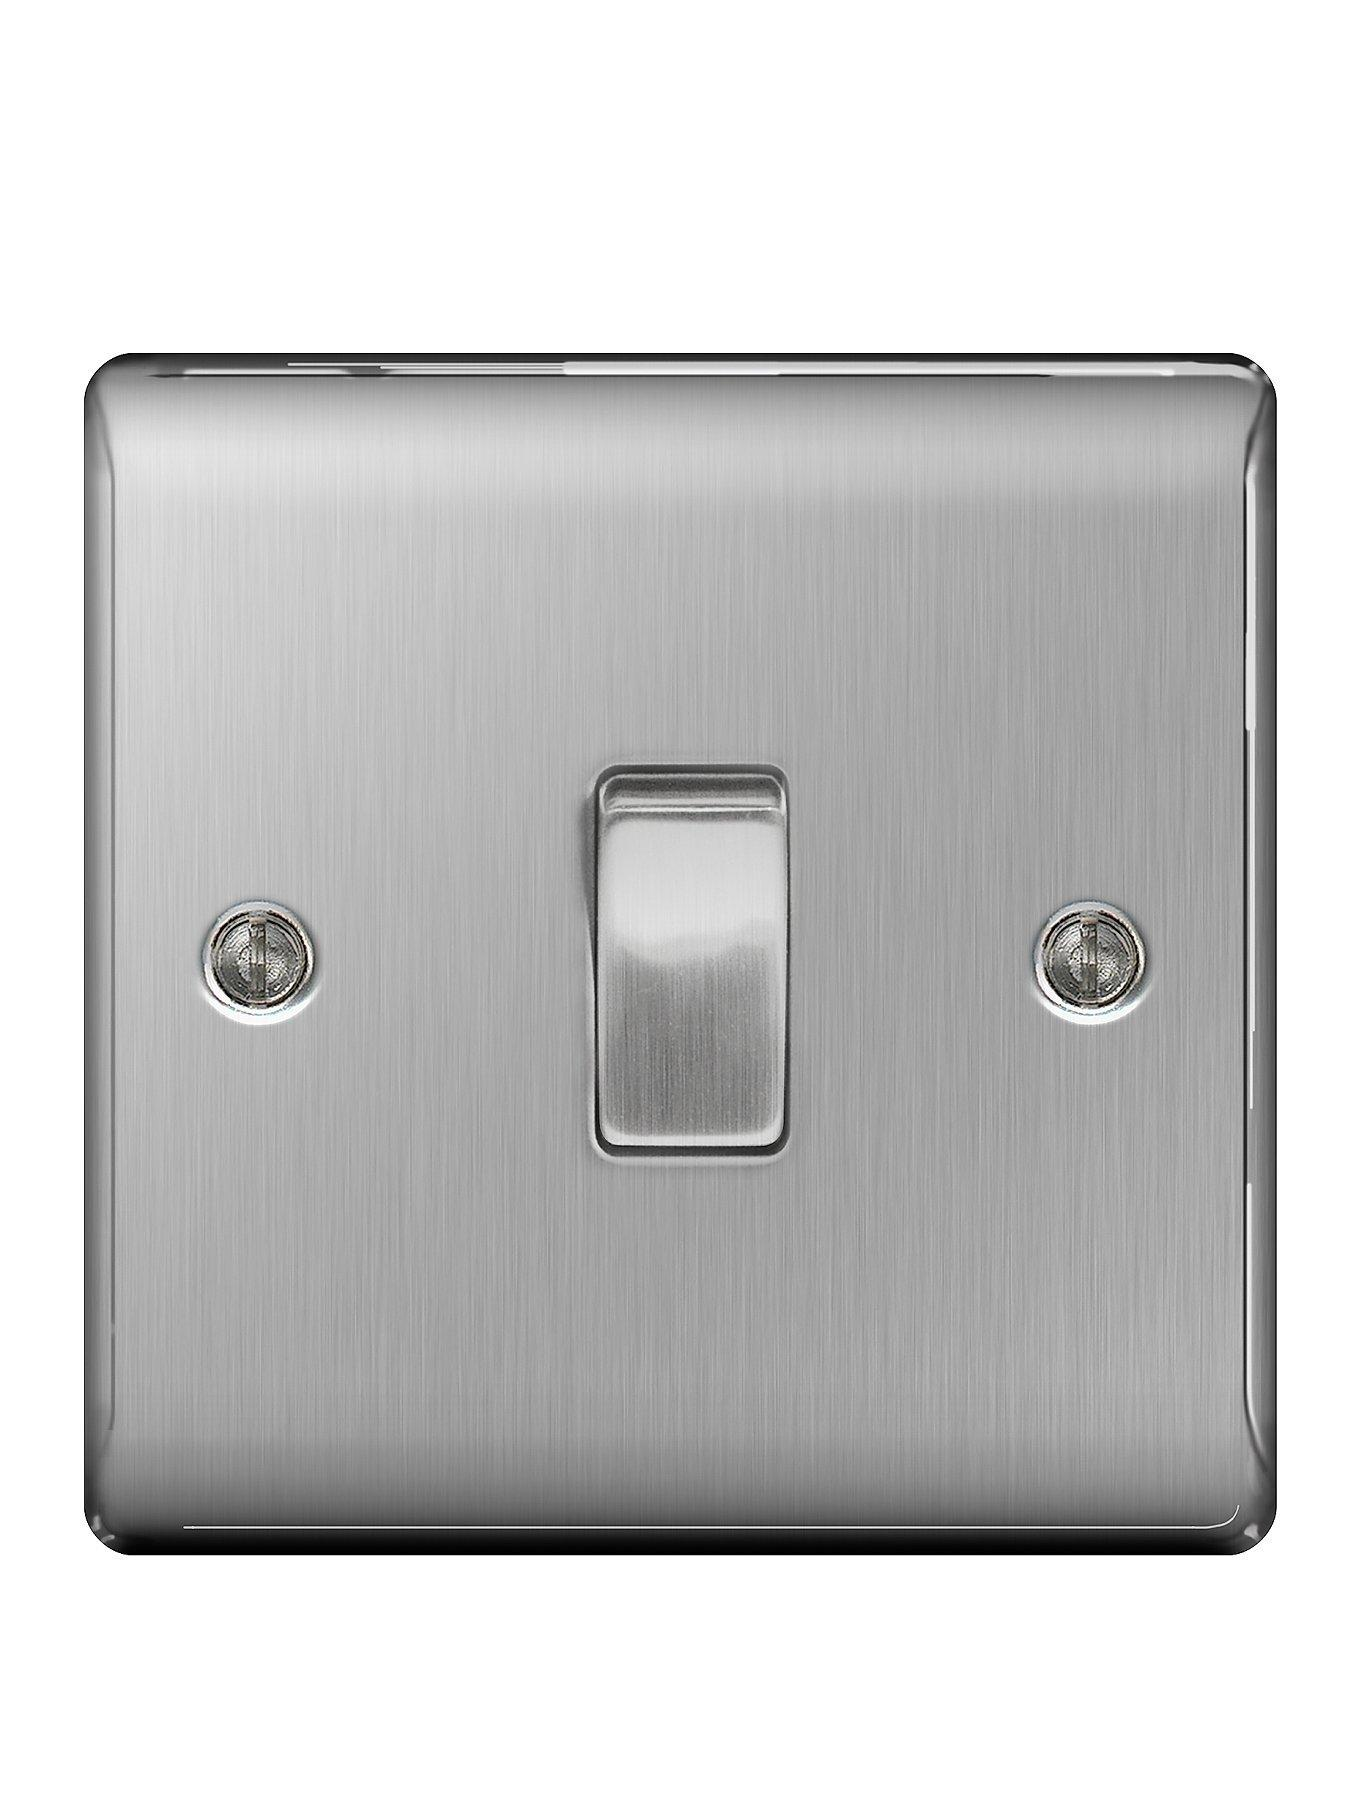 Compare cheap offers & prices of British General Brushed Steel 1G Switch manufactured by British General